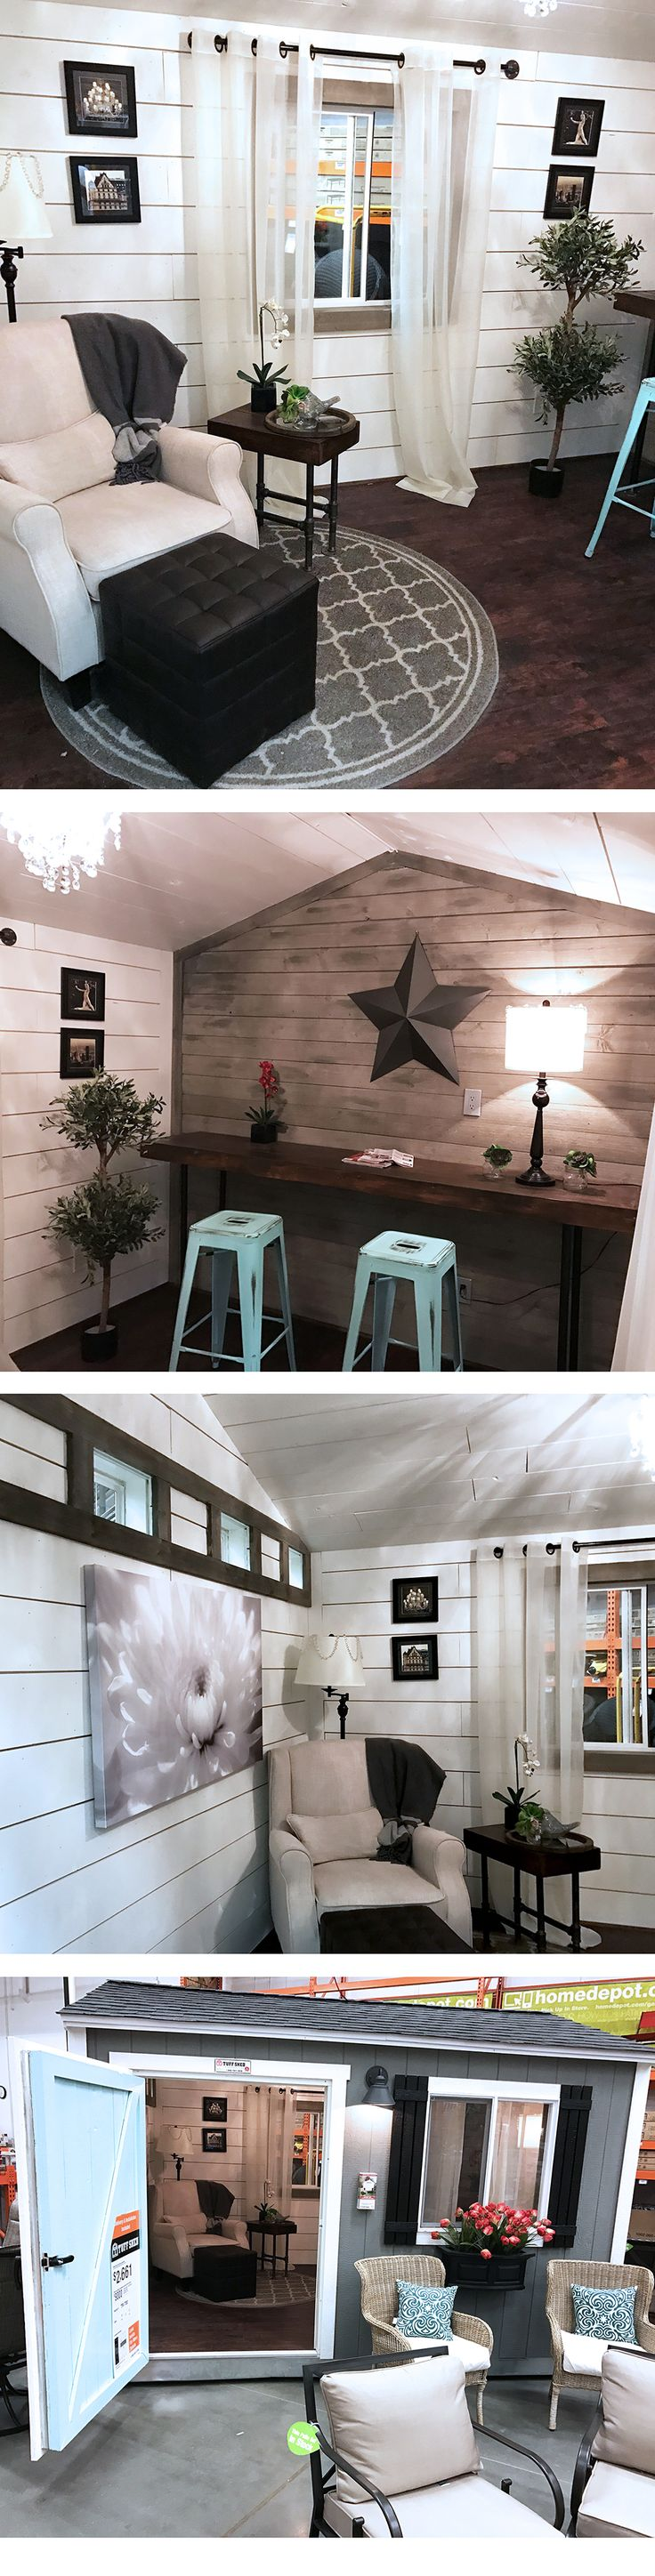 224 best shed house images on pinterest